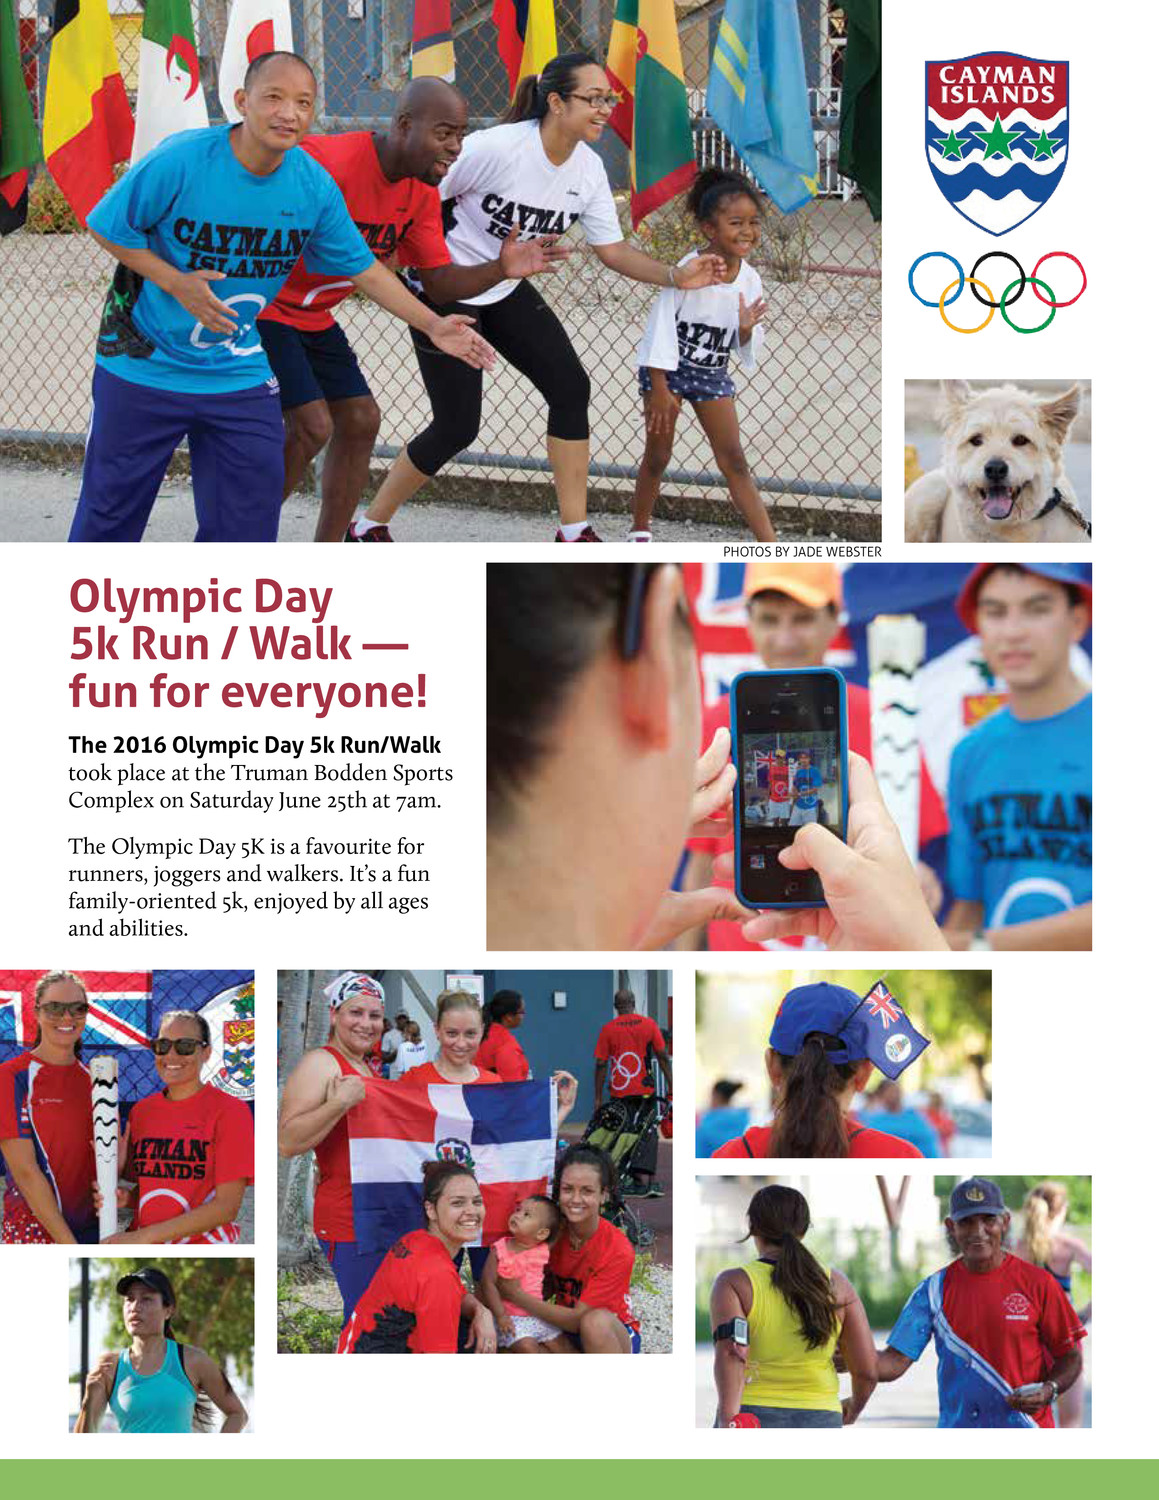 Cayman Islanders could also participate in a 5k run/walk, and we included a page of pictures from that even.